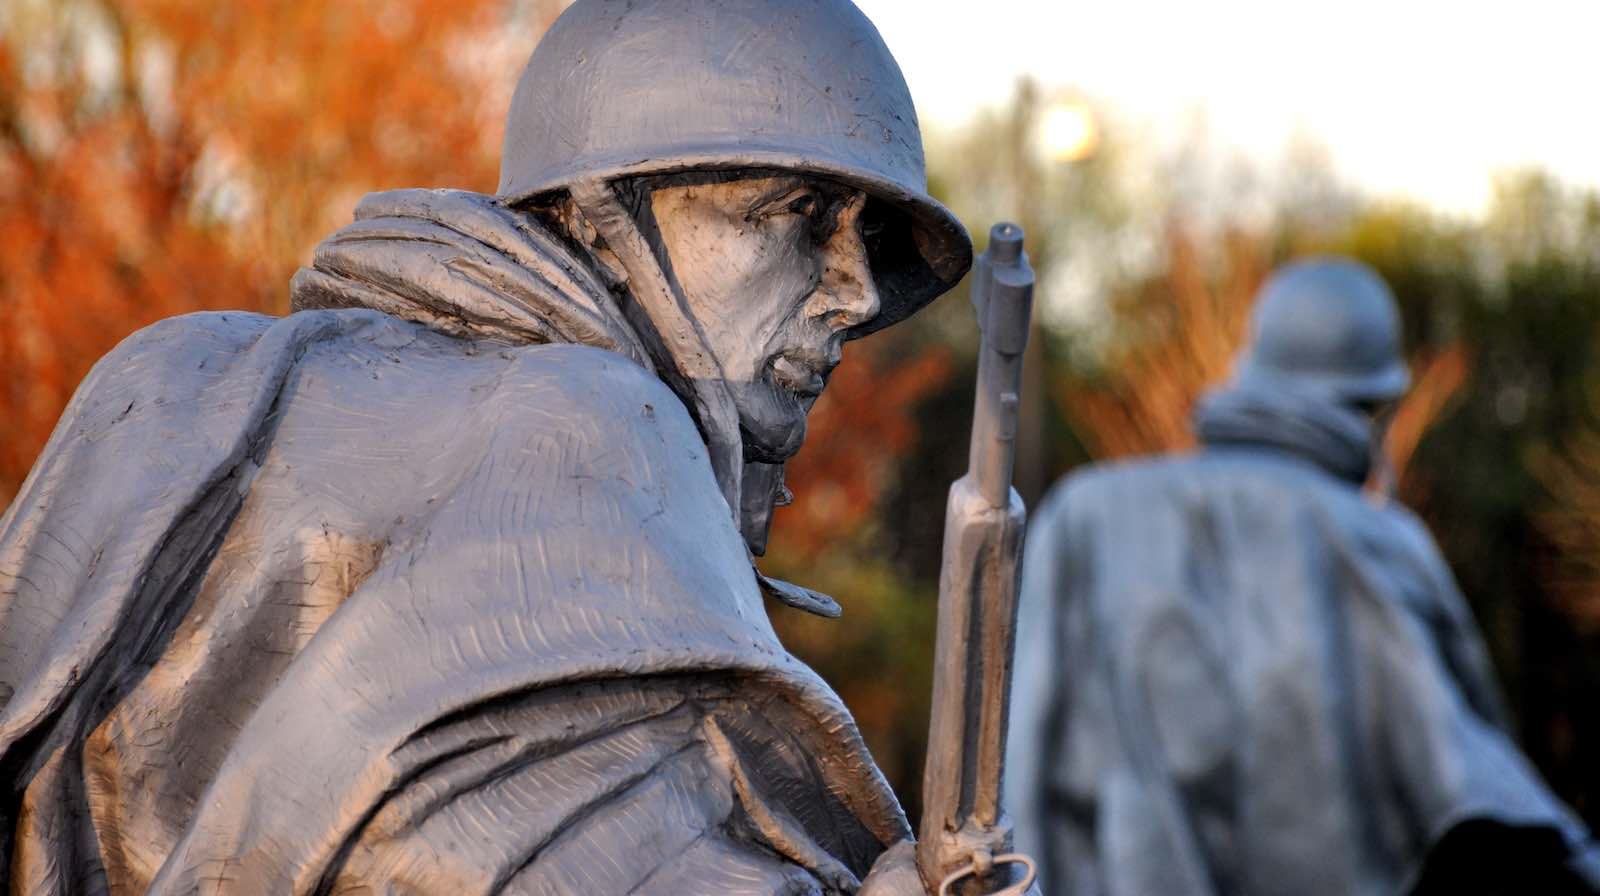 Korean War memorial, Washington DC (Photo: Kevin Burkett/Flickr)